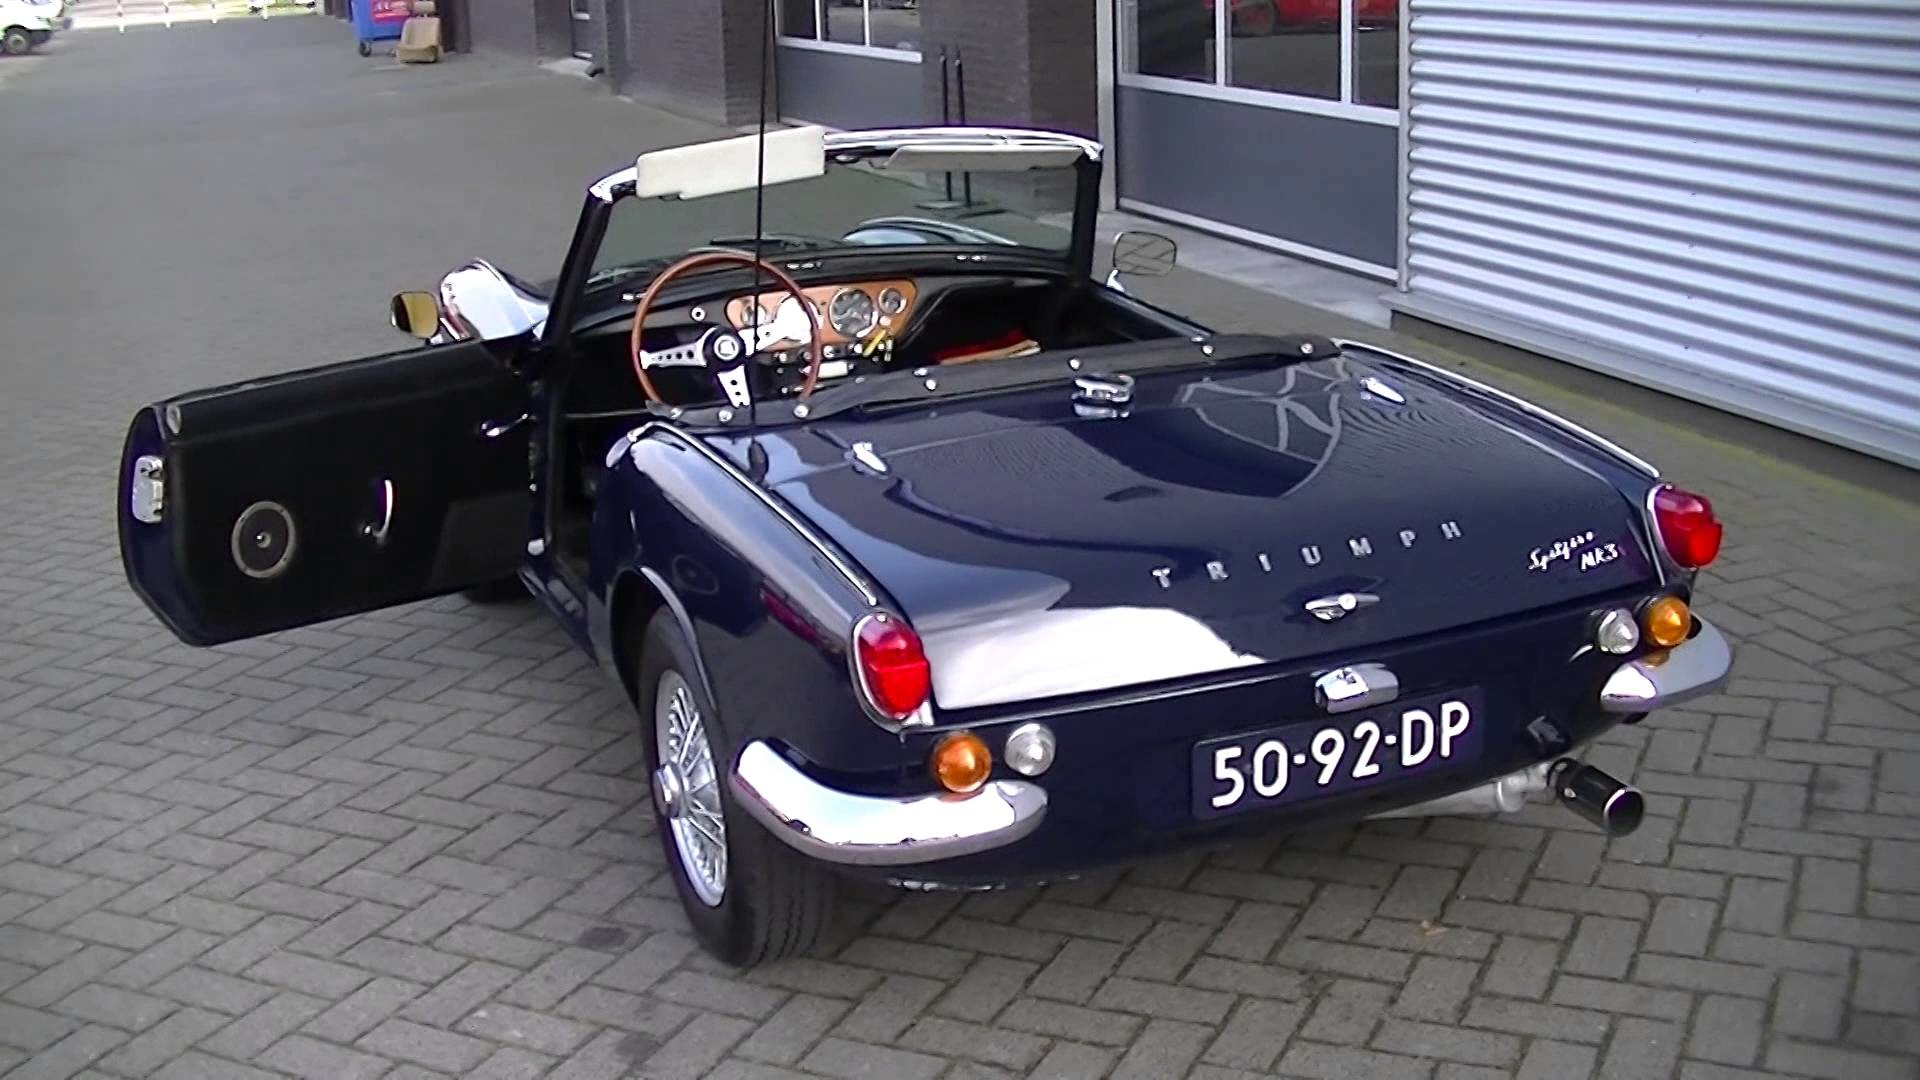 Res: 1920x1080, Triumph Spitfire mkIII 1967 wire wheels very good condition -VIDEO-  www.ERclassics.com - YouTube